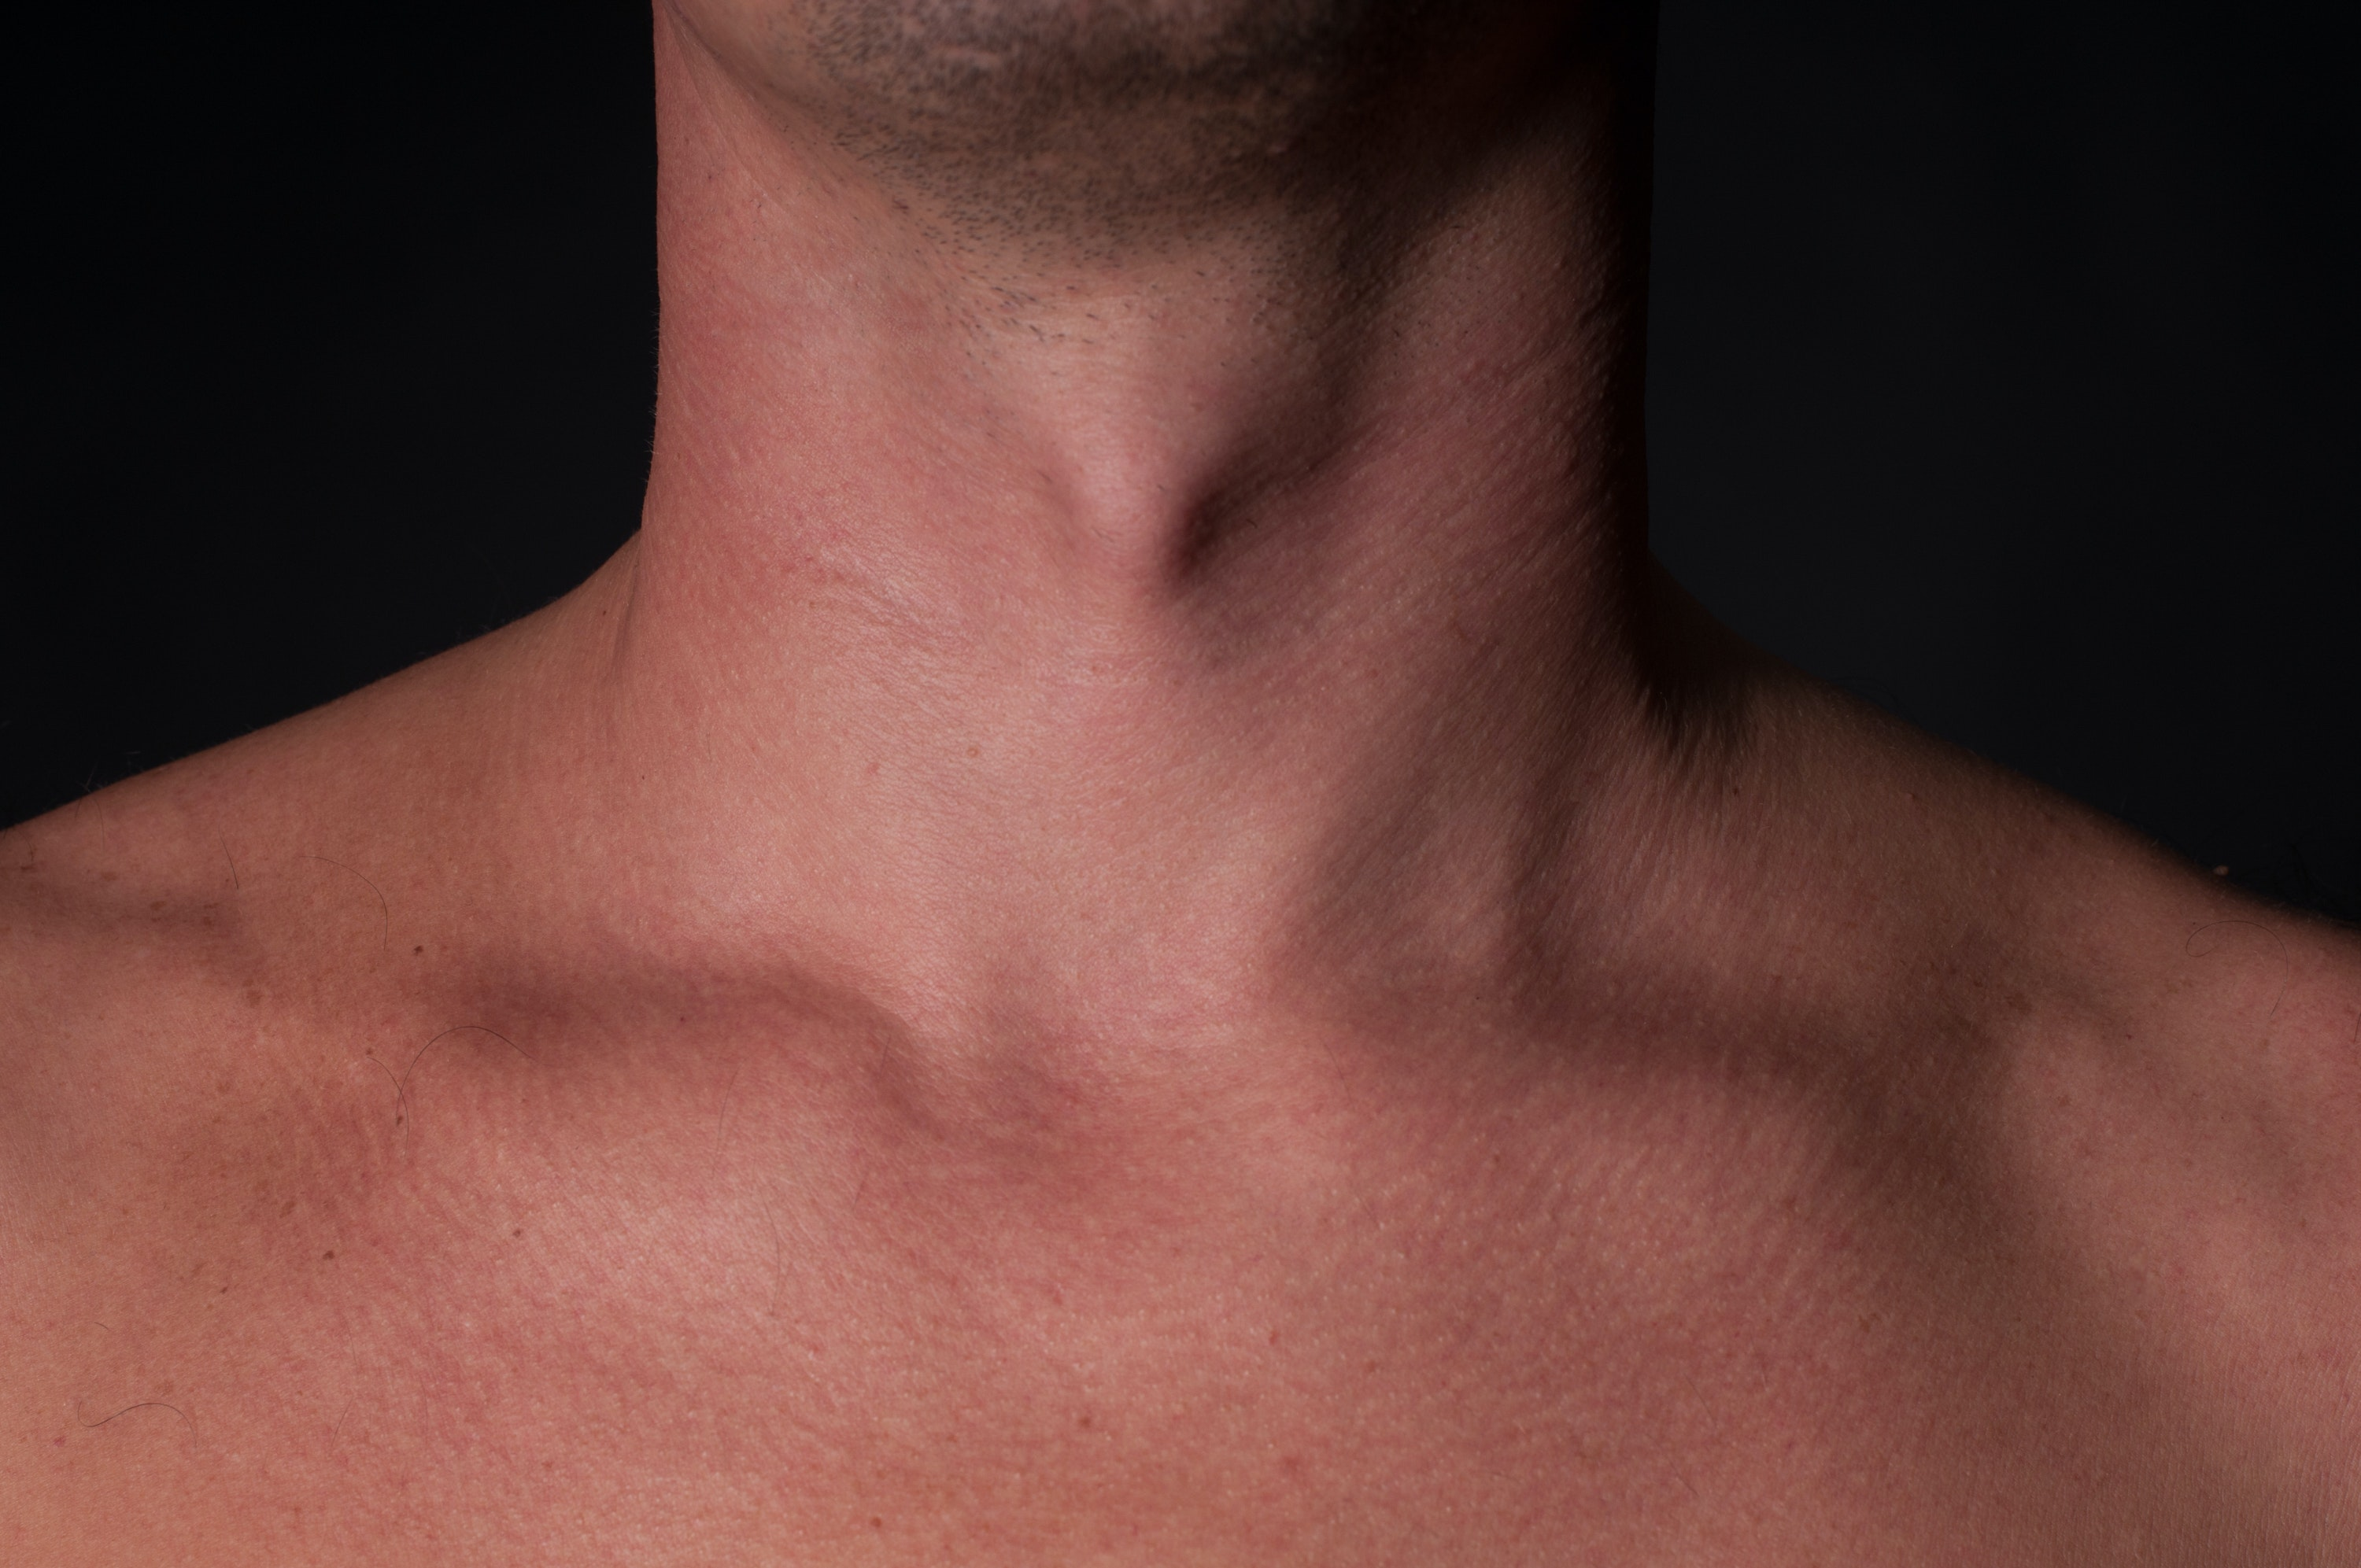 An image depicting a person suffering from fat pads on top of the collarbone symptoms